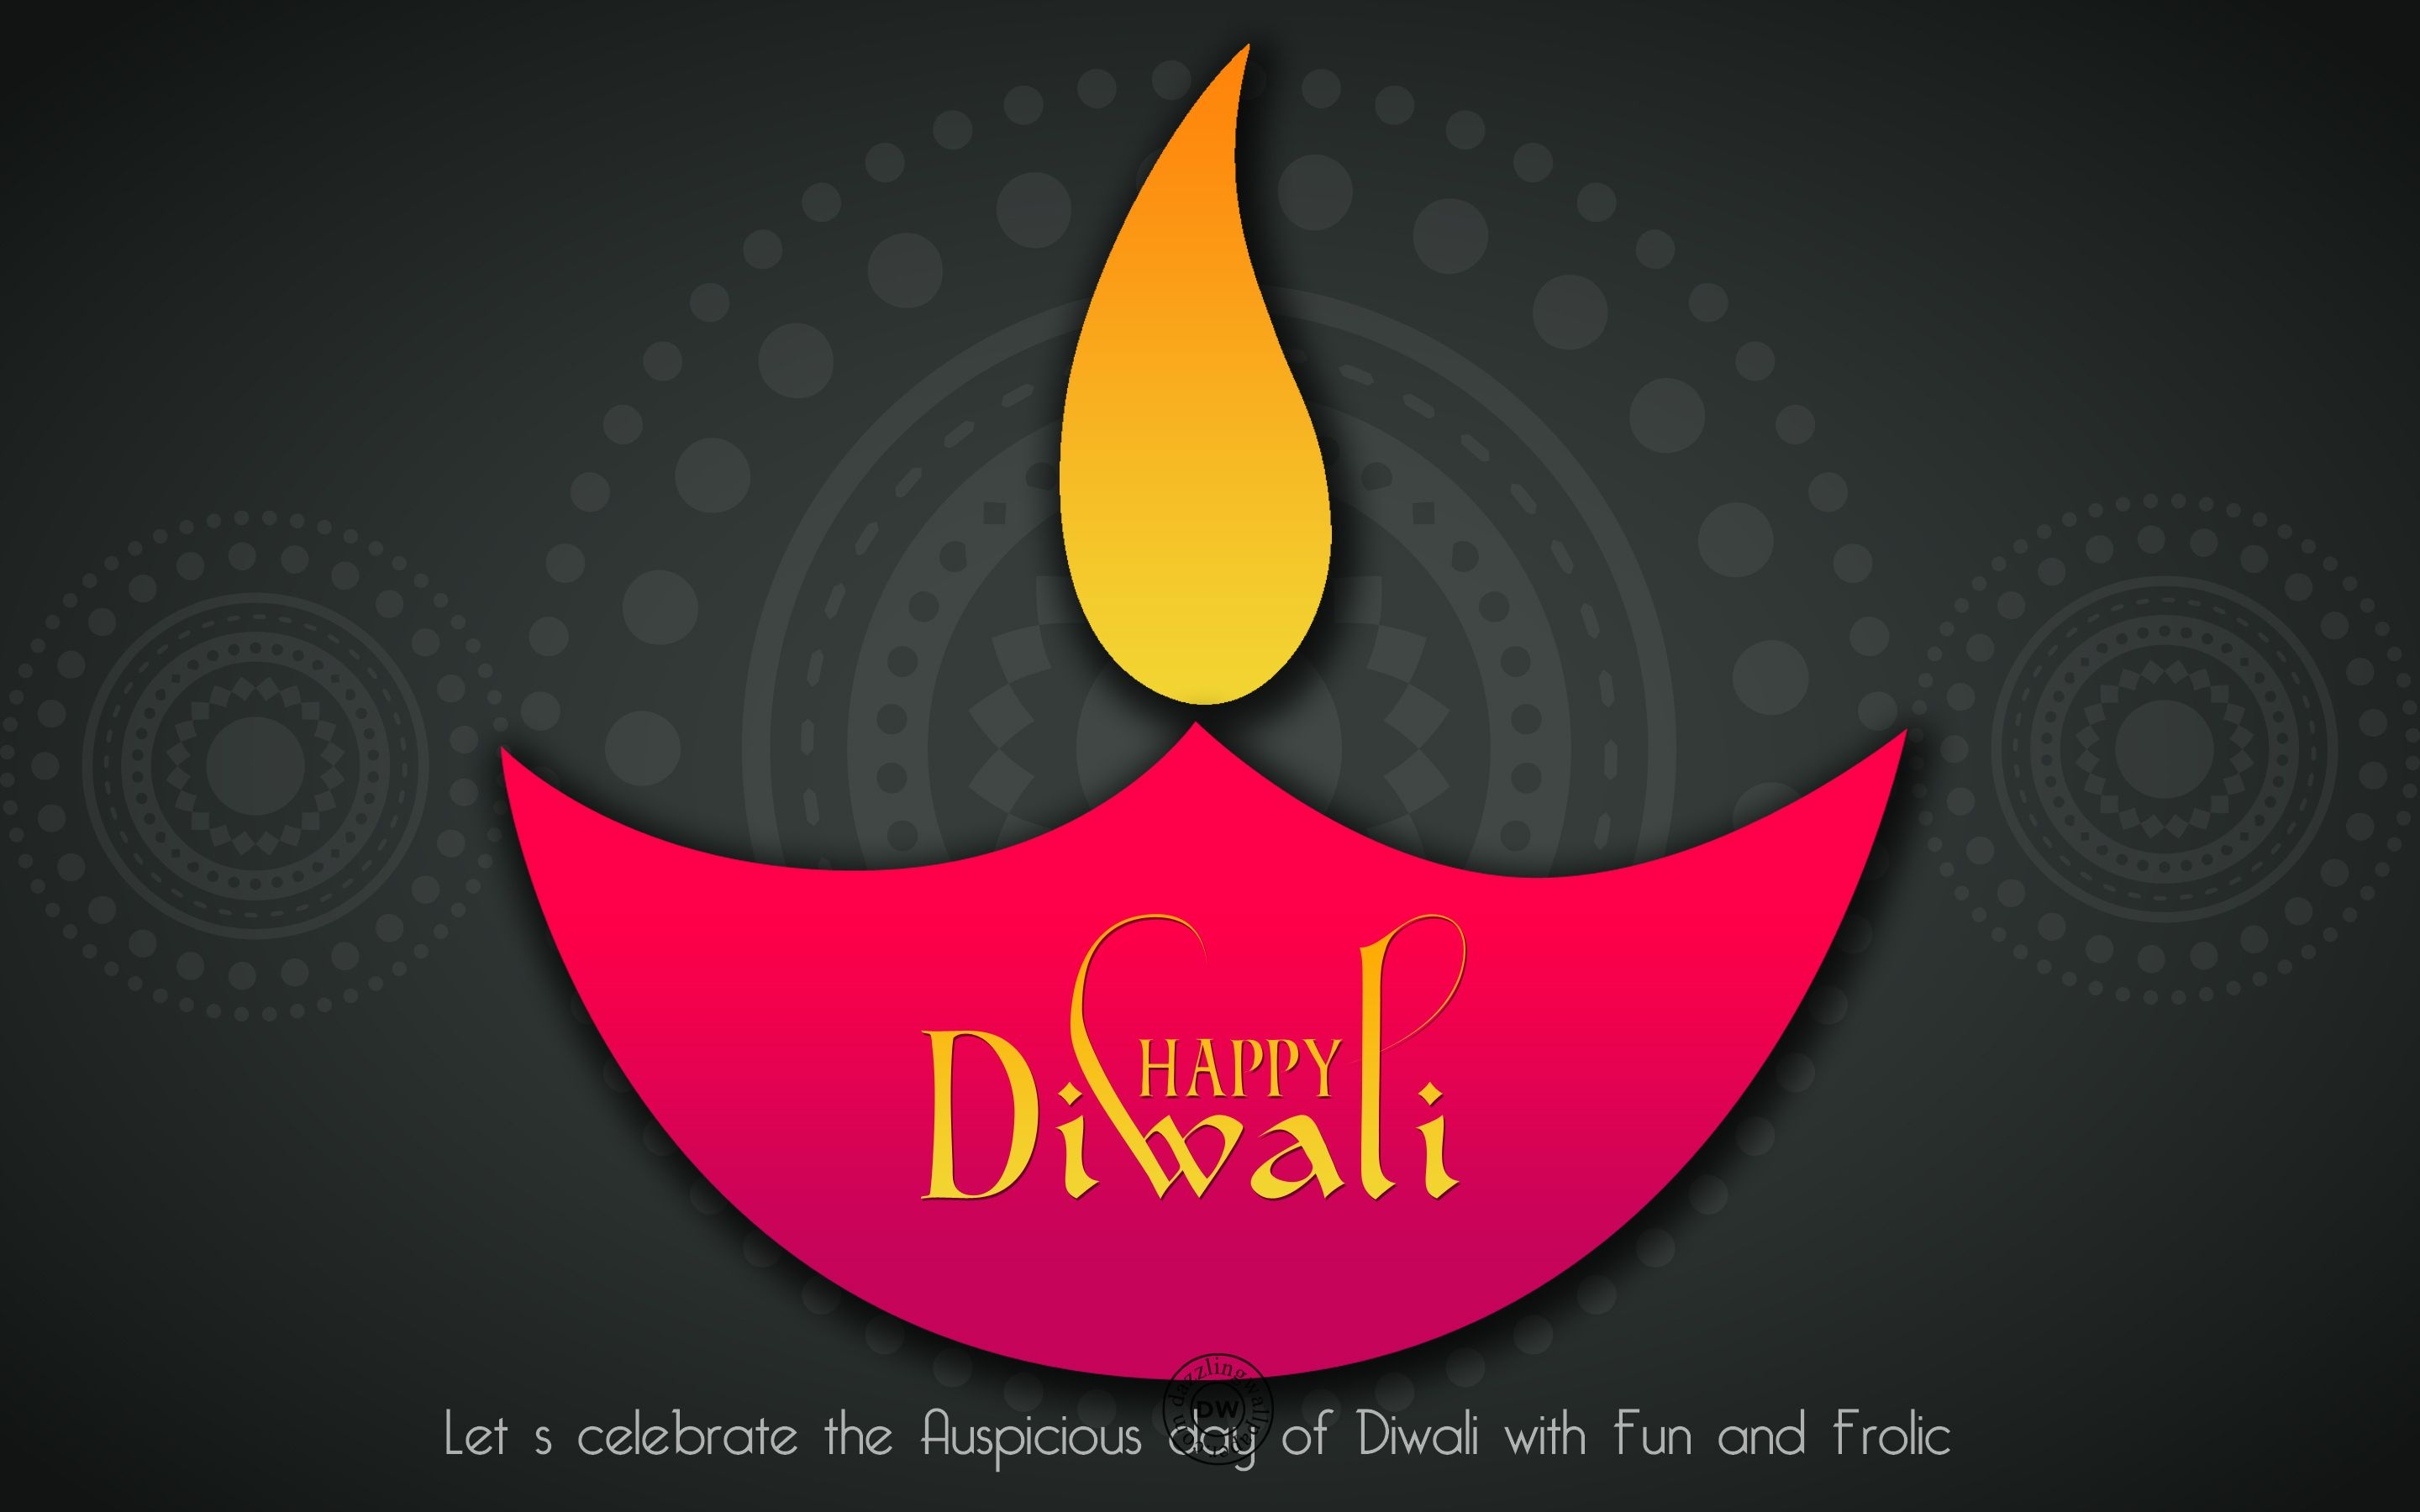 Happy Diwali 2016 Greetings Ashish In 2018 Pinterest Happy